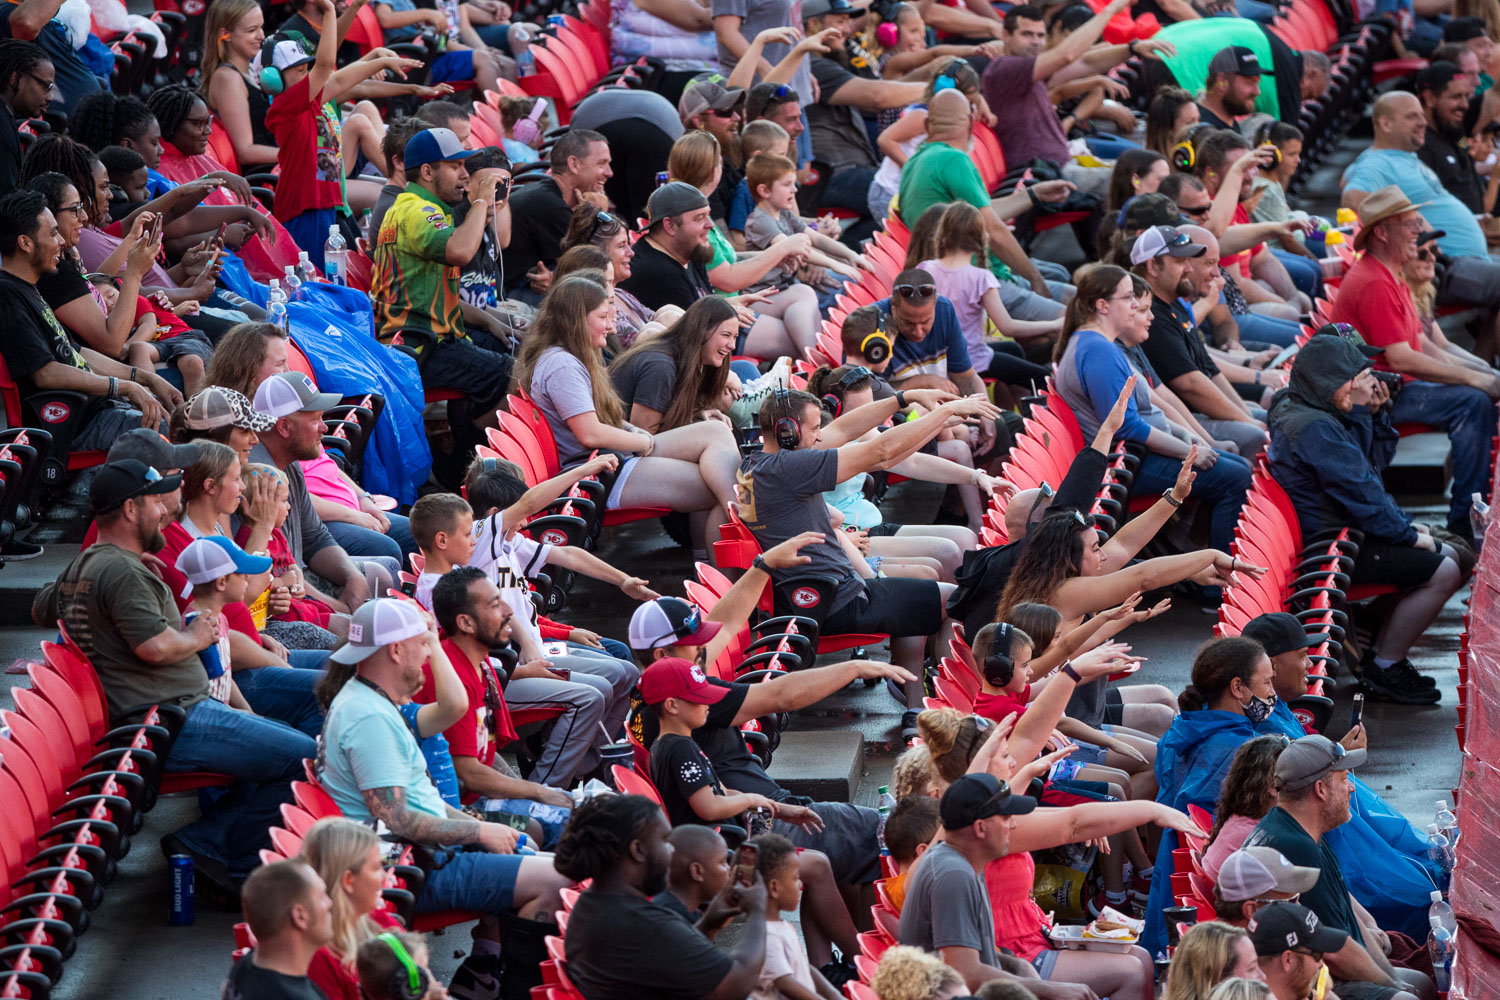 Fans throw up the zombie arms during Monster Jam at GEHA Field at Arrowhead on Saturday evening, June 26, 2021.